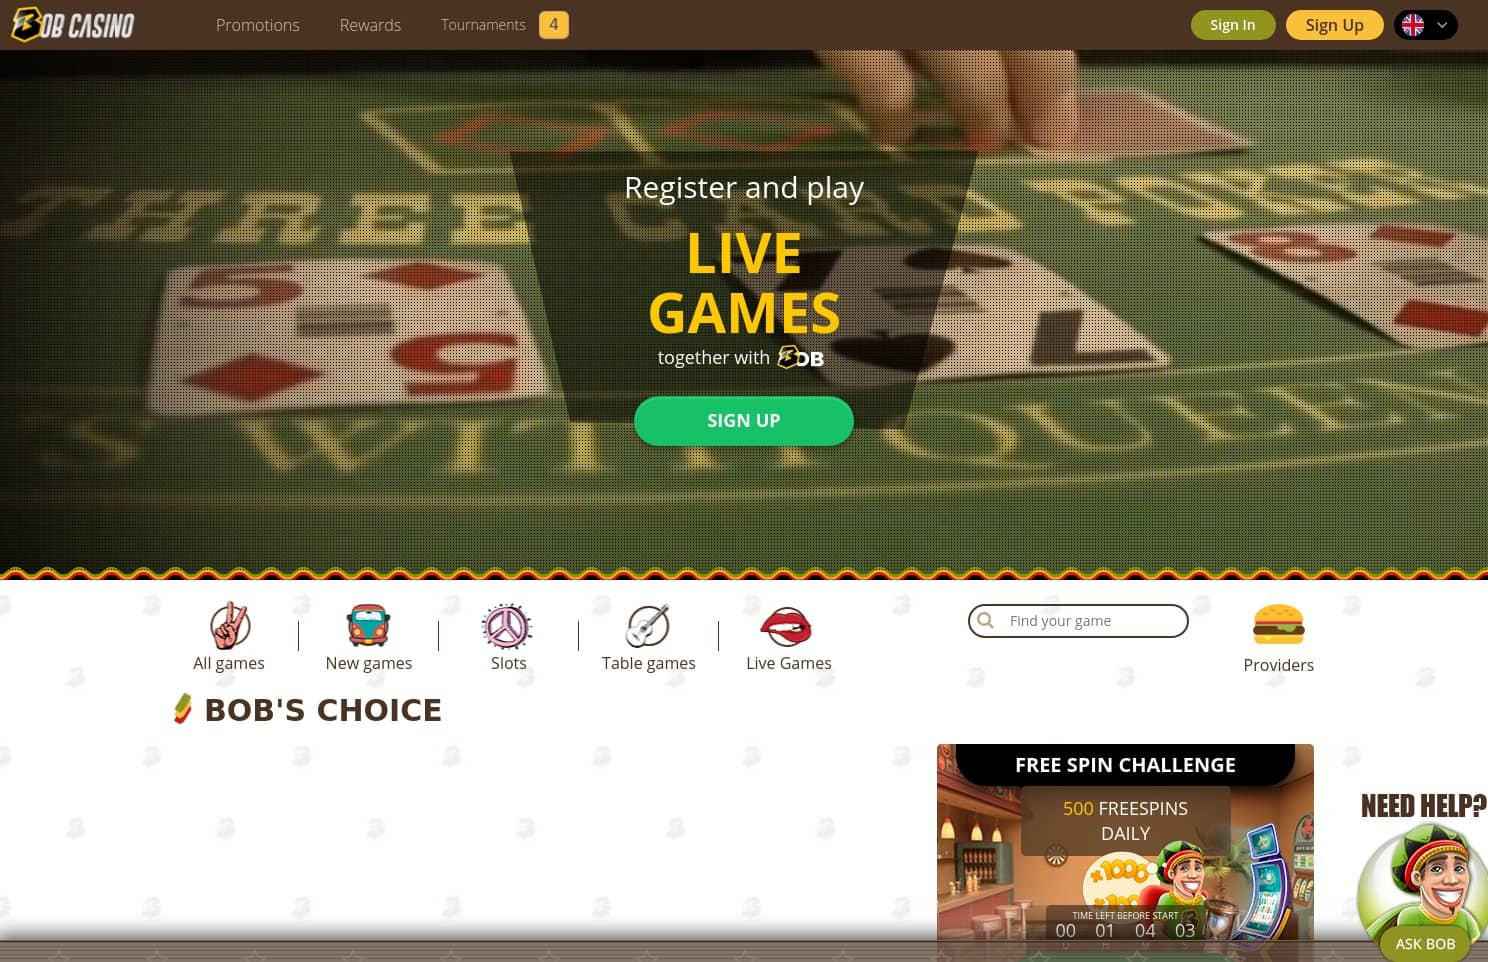 roulette-spelen.nl casino review Bob Casino homepage screenshot